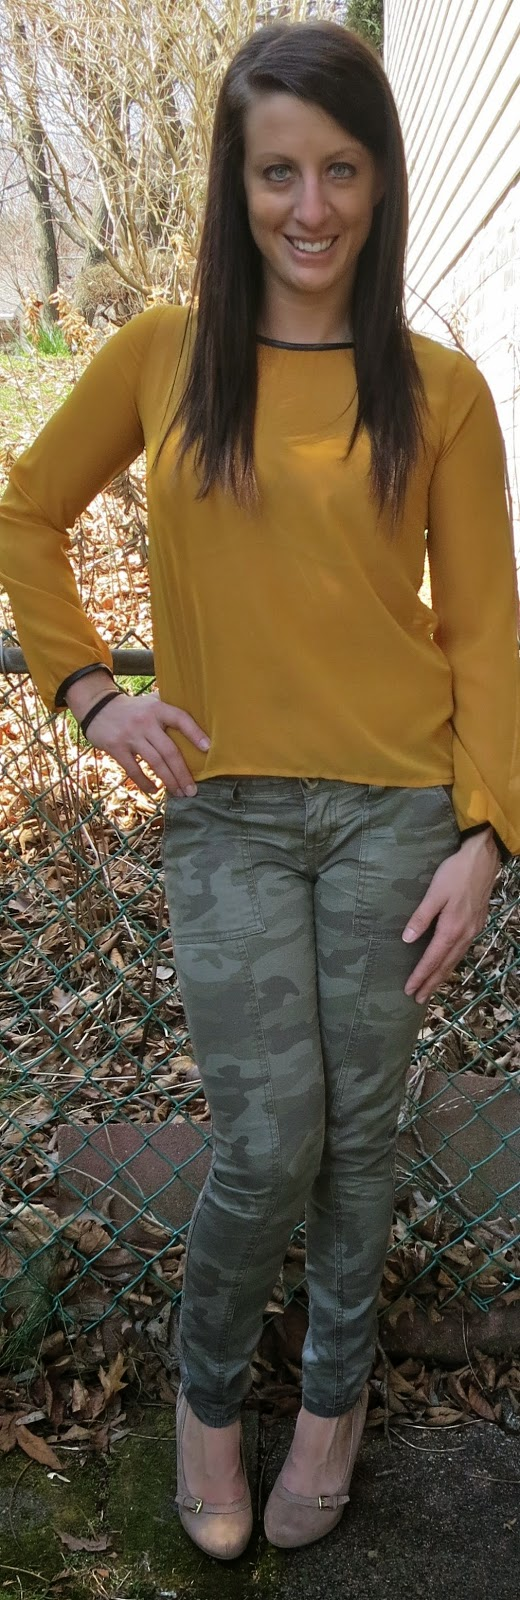 mustard shirt, camo pants, target, fashion, outfit